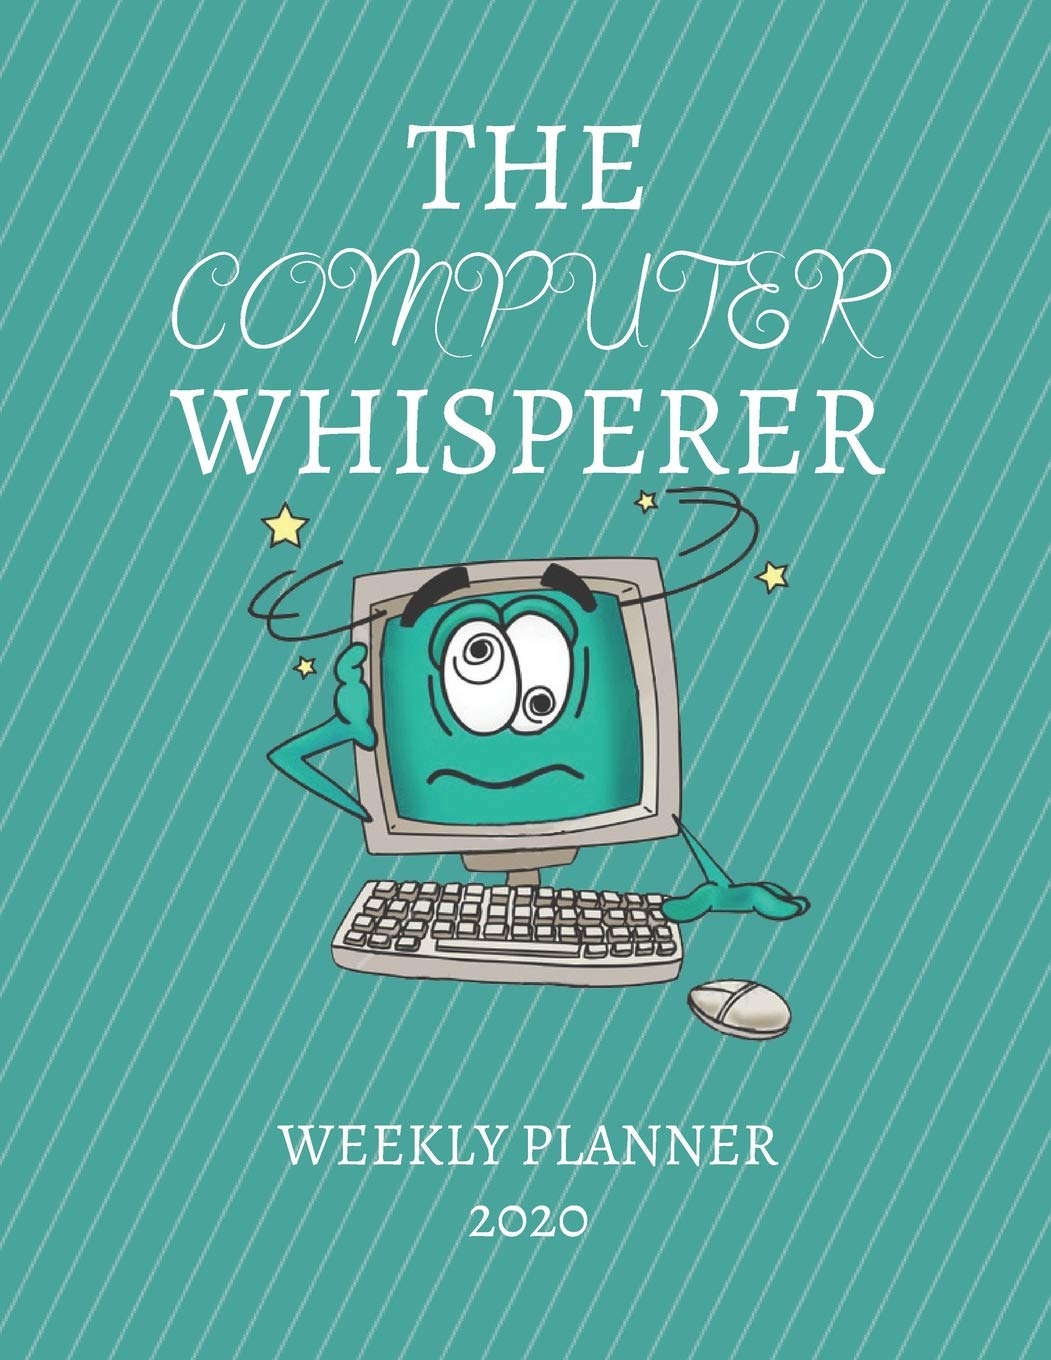 The Computer Whisperer Weekly Planner 2020: IT Tech Support, IT Nerd Gift Idea For Men & Women | Weekly Planner Appointment Book Agenda The Computer Whisperer | To Do List & No